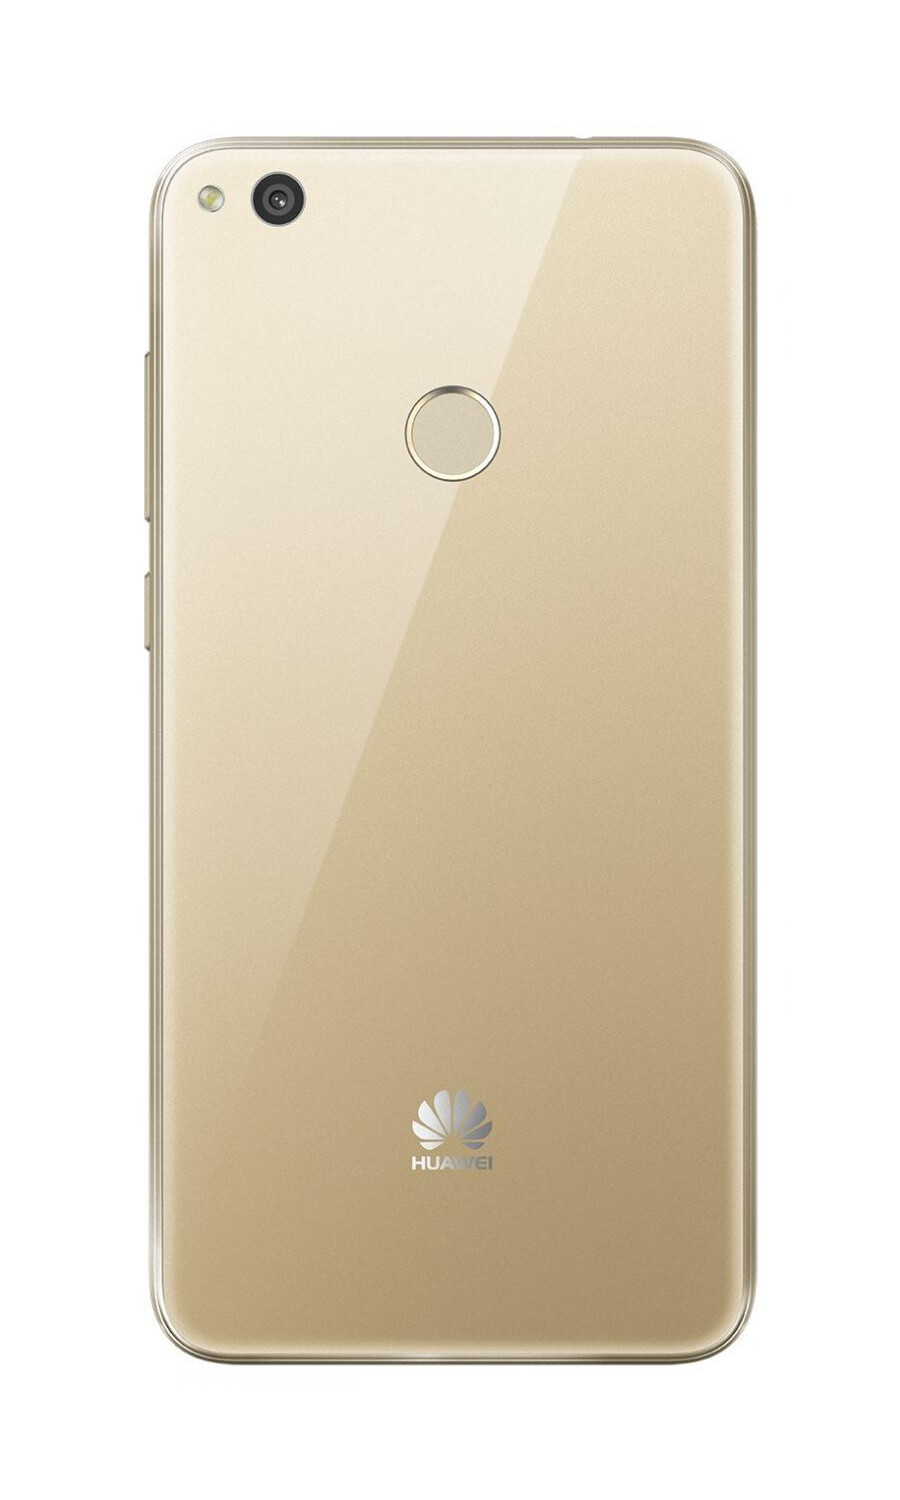 huawei p8 lite 2017 introduced with kirin 655 chipset android 7 0 nougat. Black Bedroom Furniture Sets. Home Design Ideas